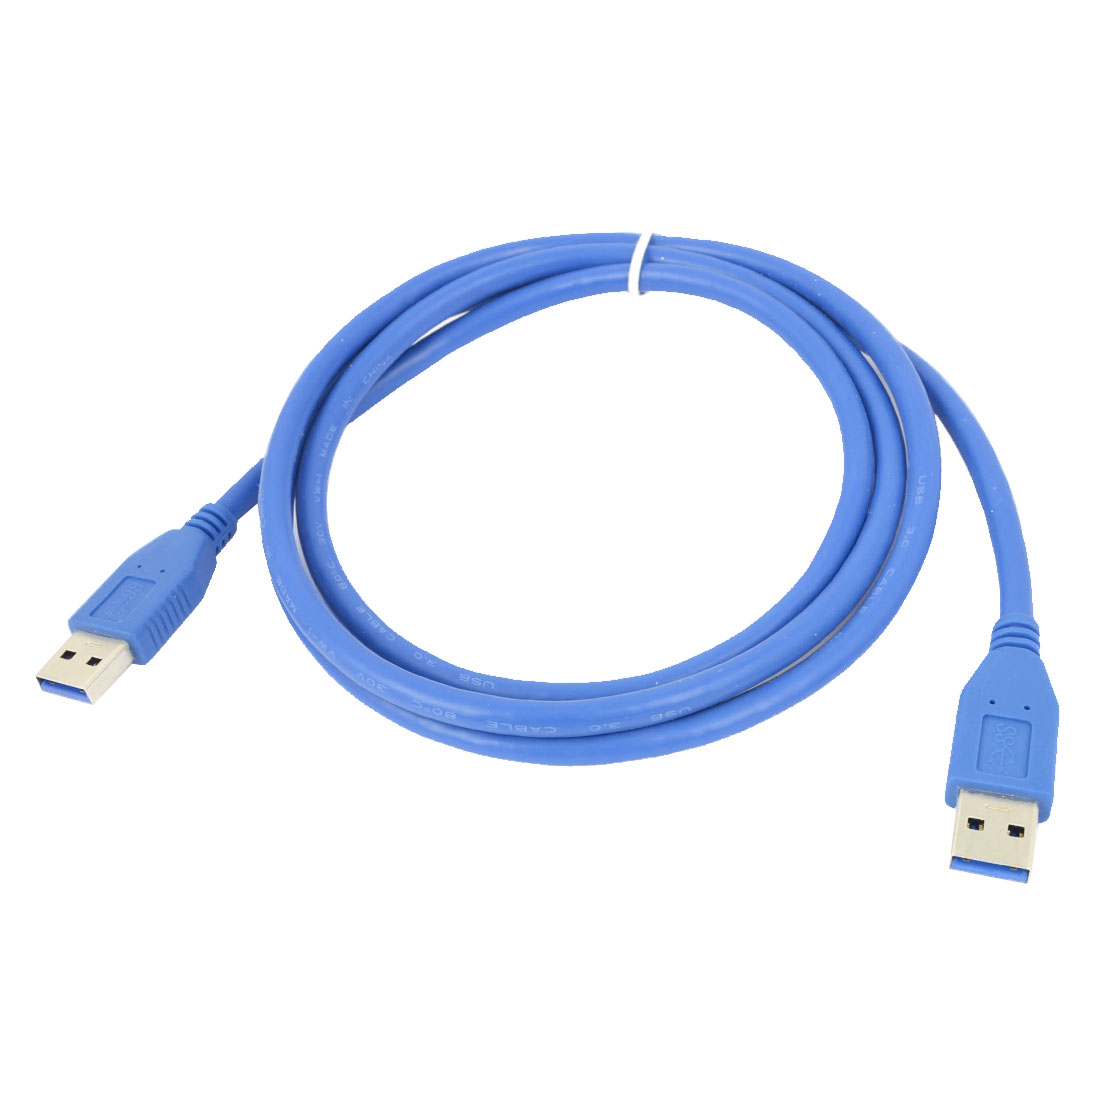 Blue USB 2.0 Type 1.5M 4.9ft A Male to Male Extension Cable Cords